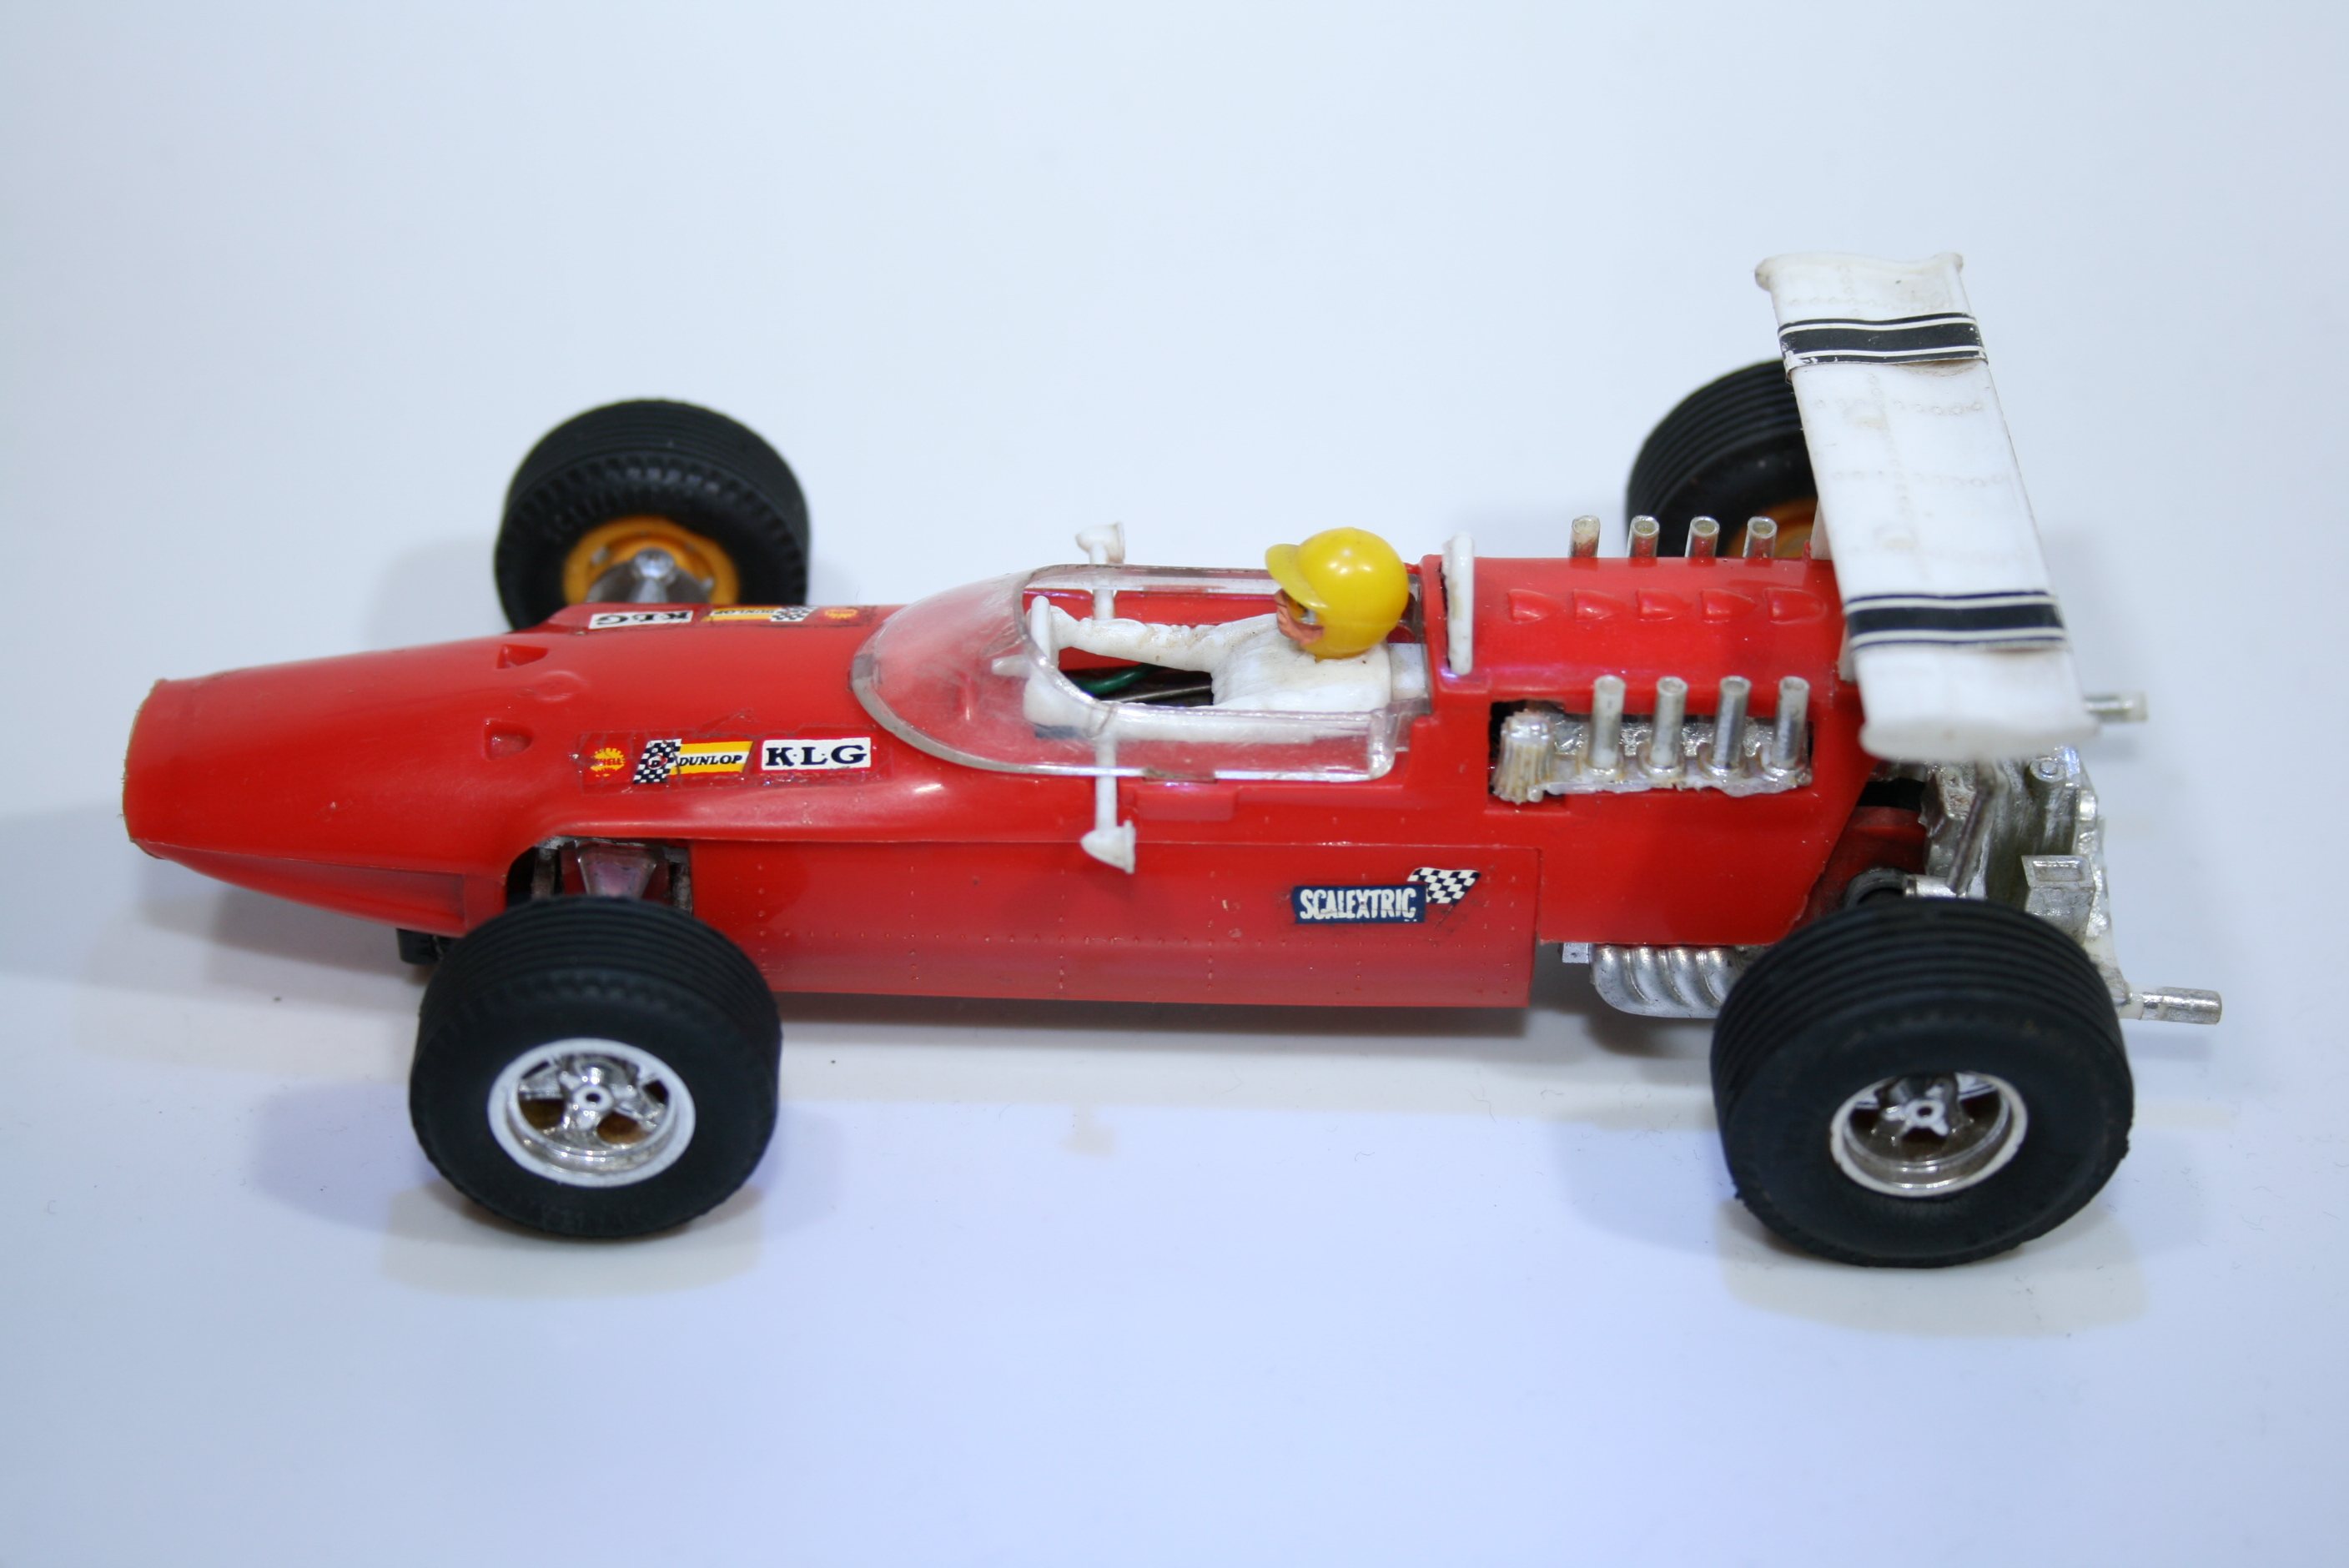 291 Ferrari 158 1964-65 J Surtees Scalextric C9 1969-72